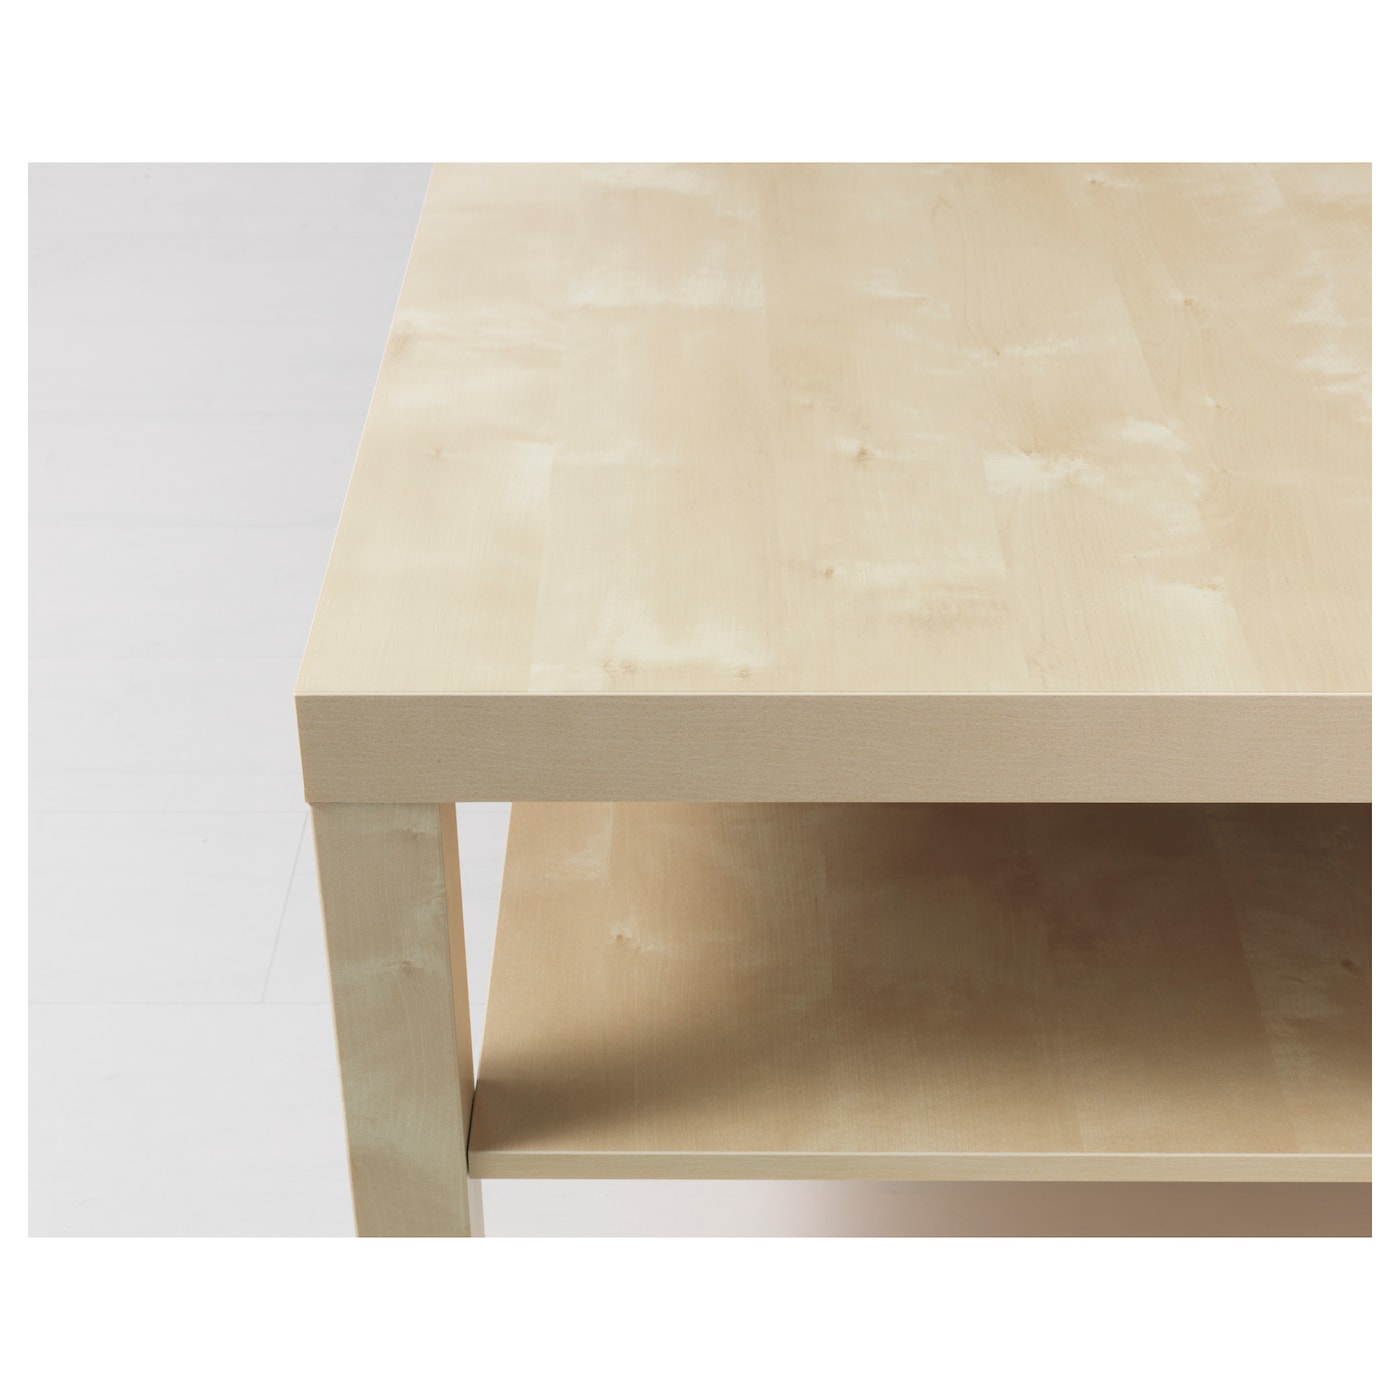 Lack coffee table birch effect 118x78 cm ikea - Ikea table basse lack ...